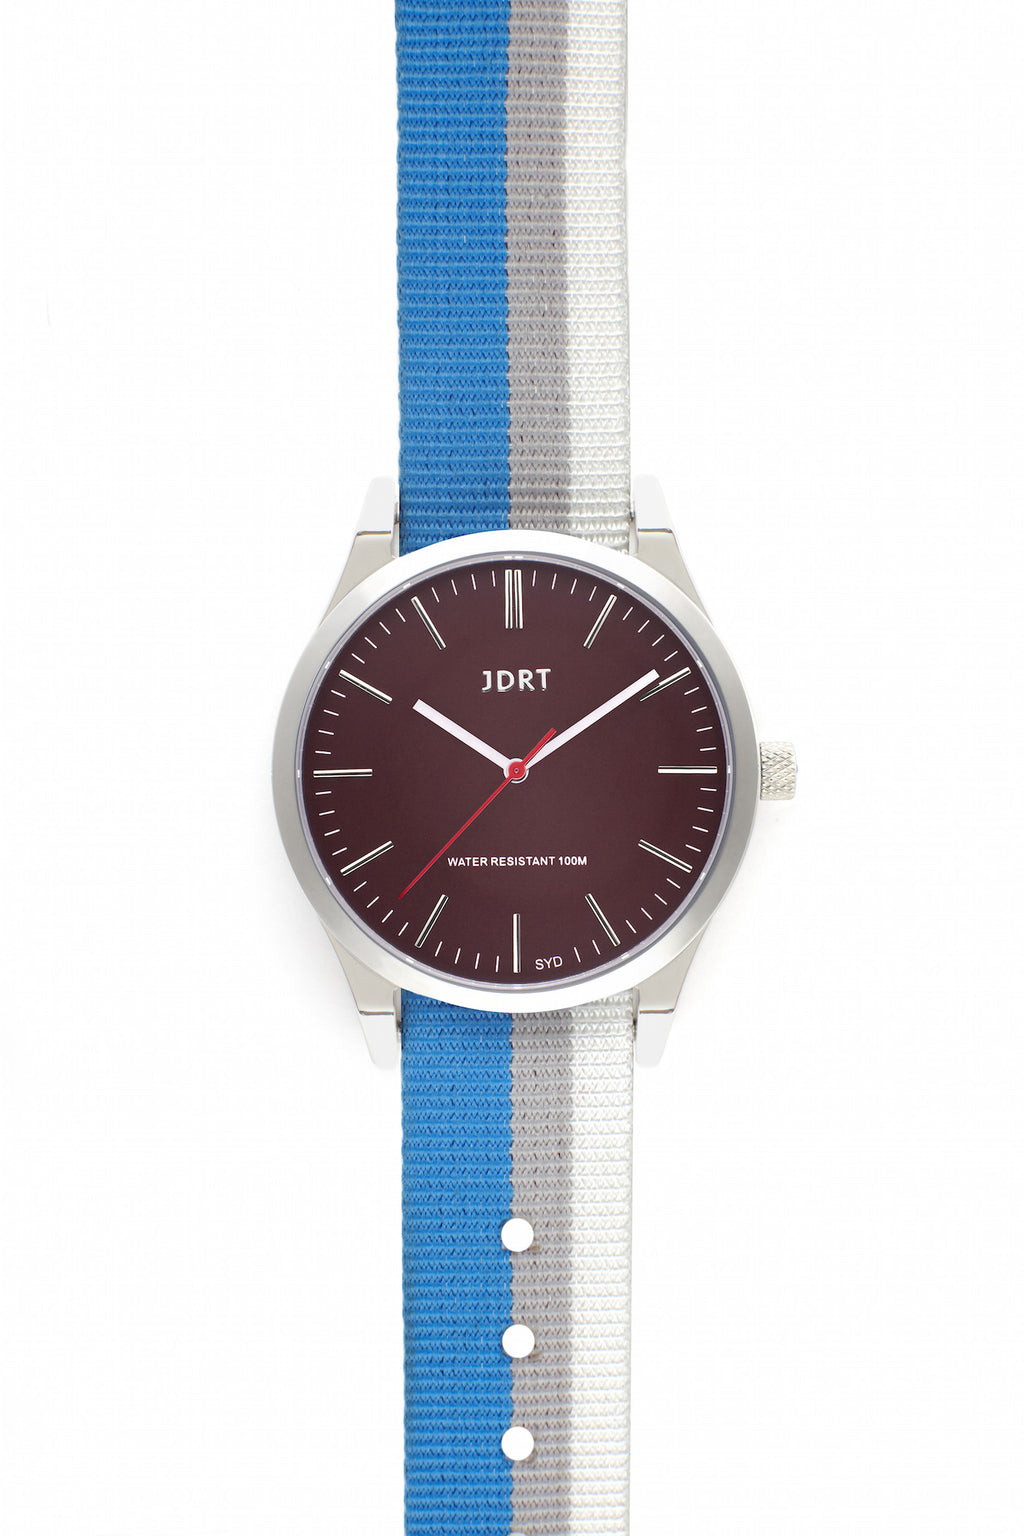 Oxblood Face with Bondi NATO Watch Band